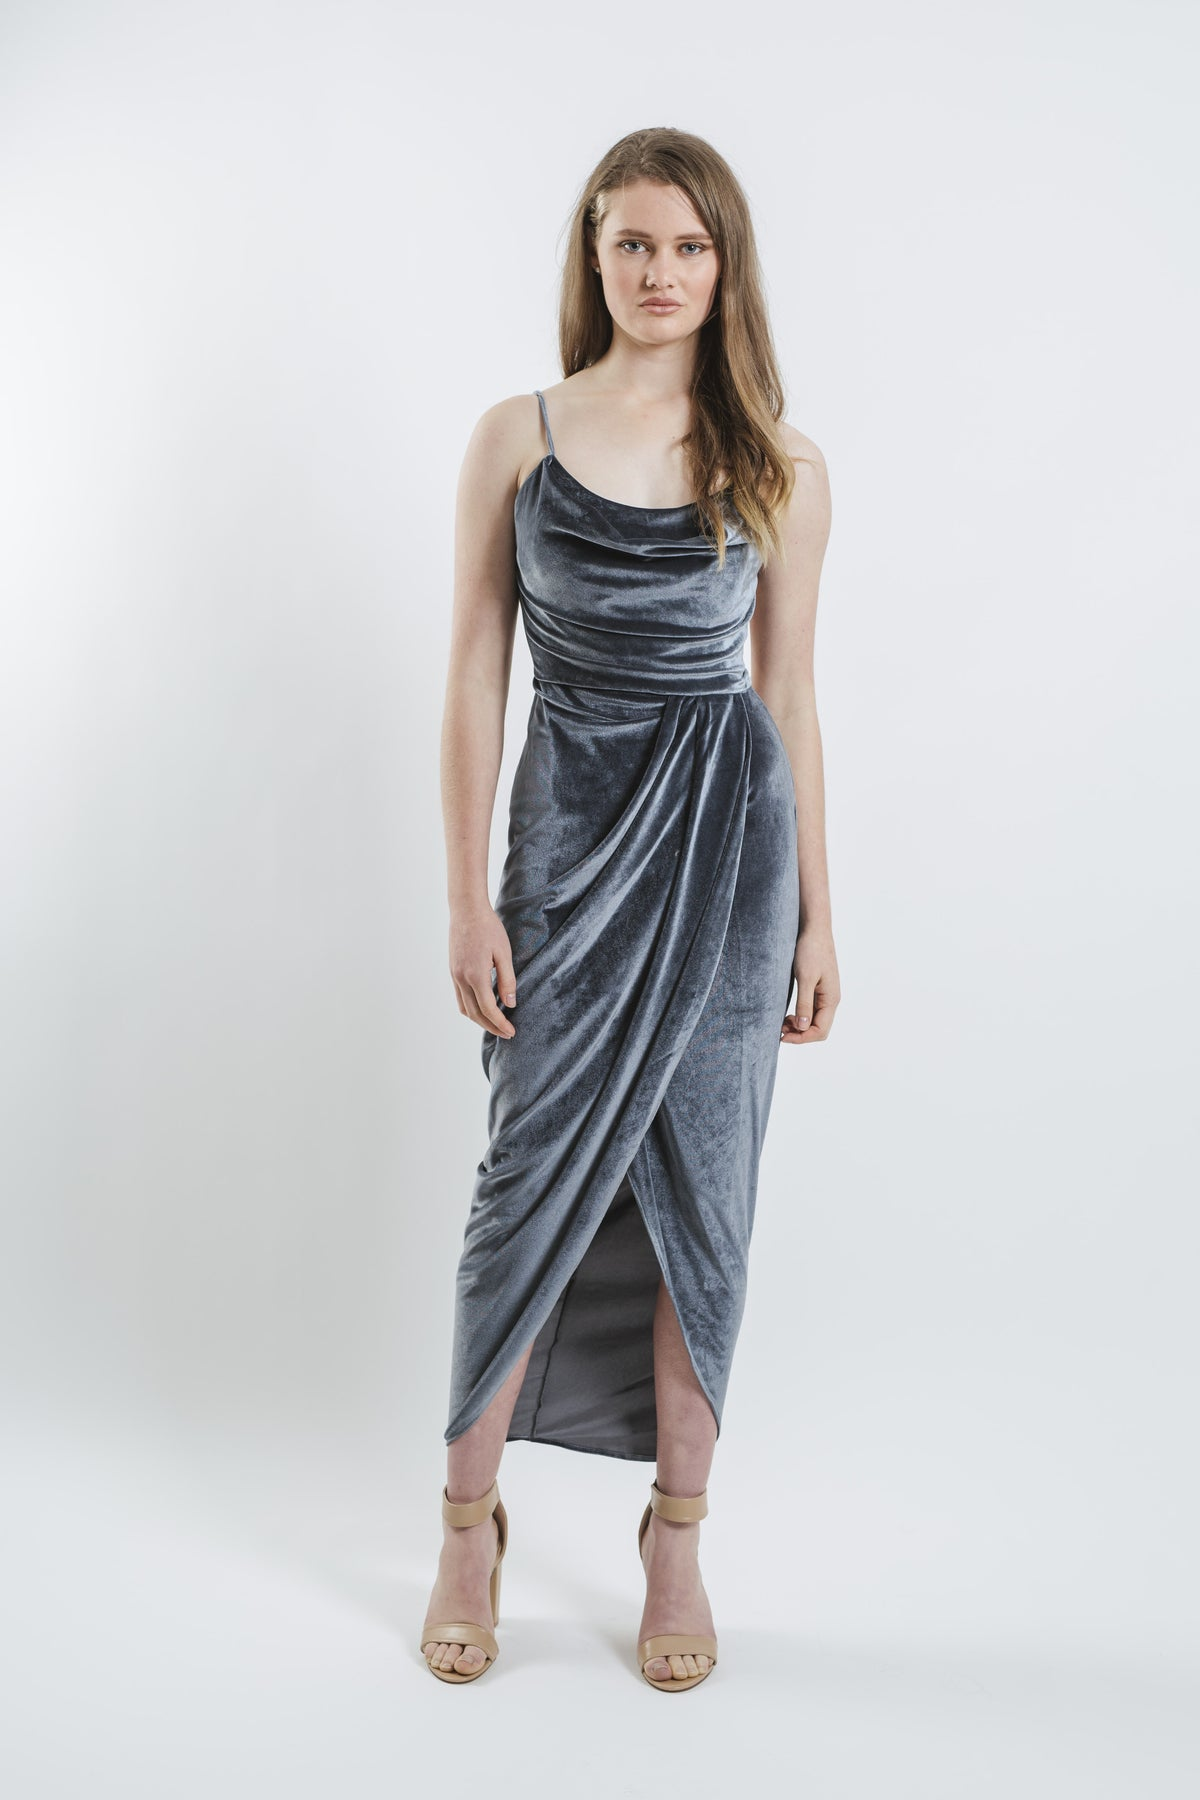 shona joy voltaire cocktail dress